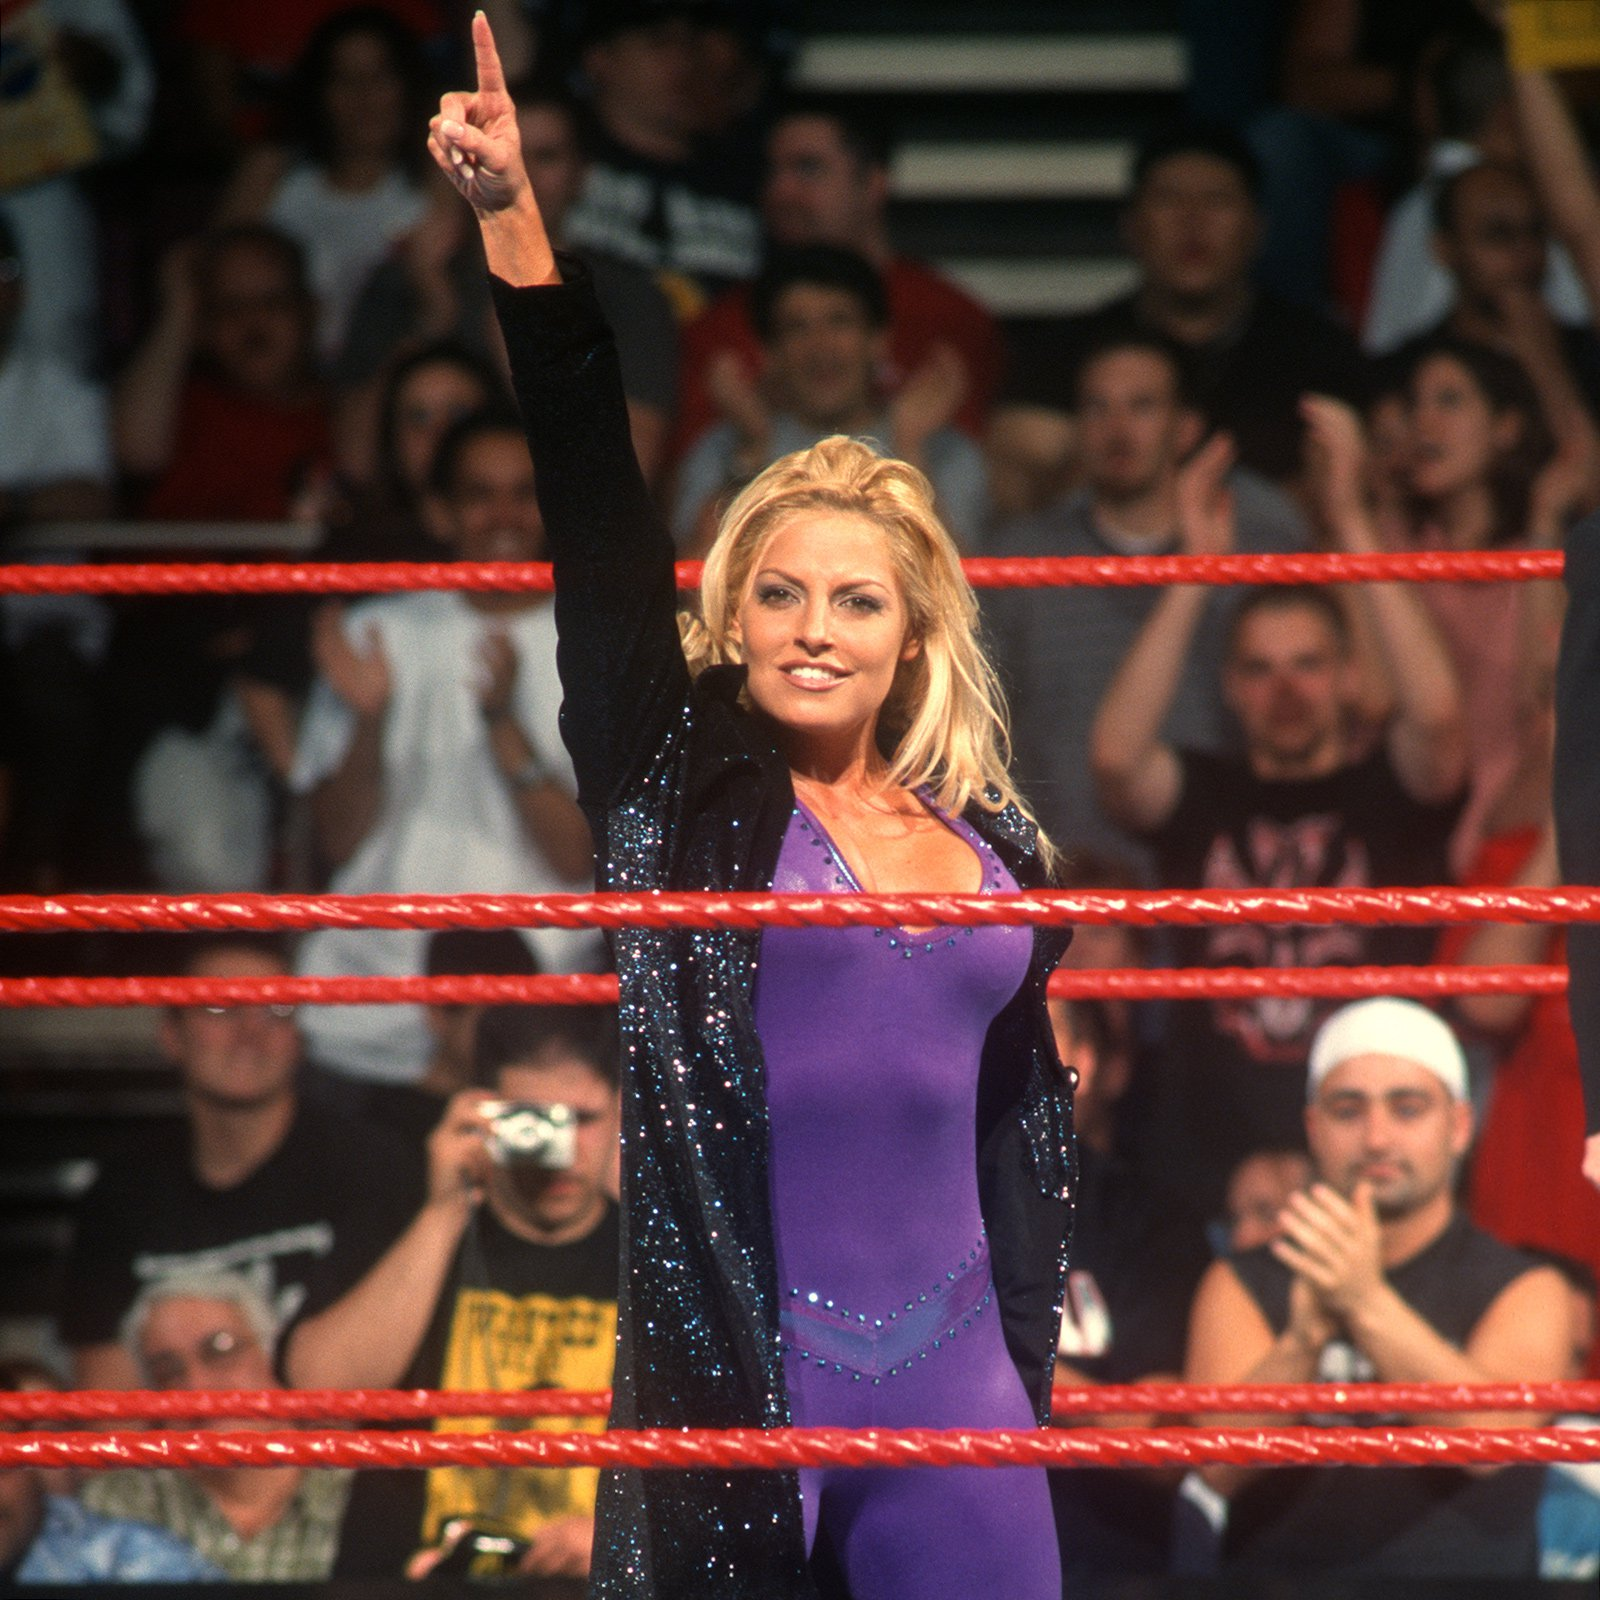 Trish Stratus' Stratusfaction